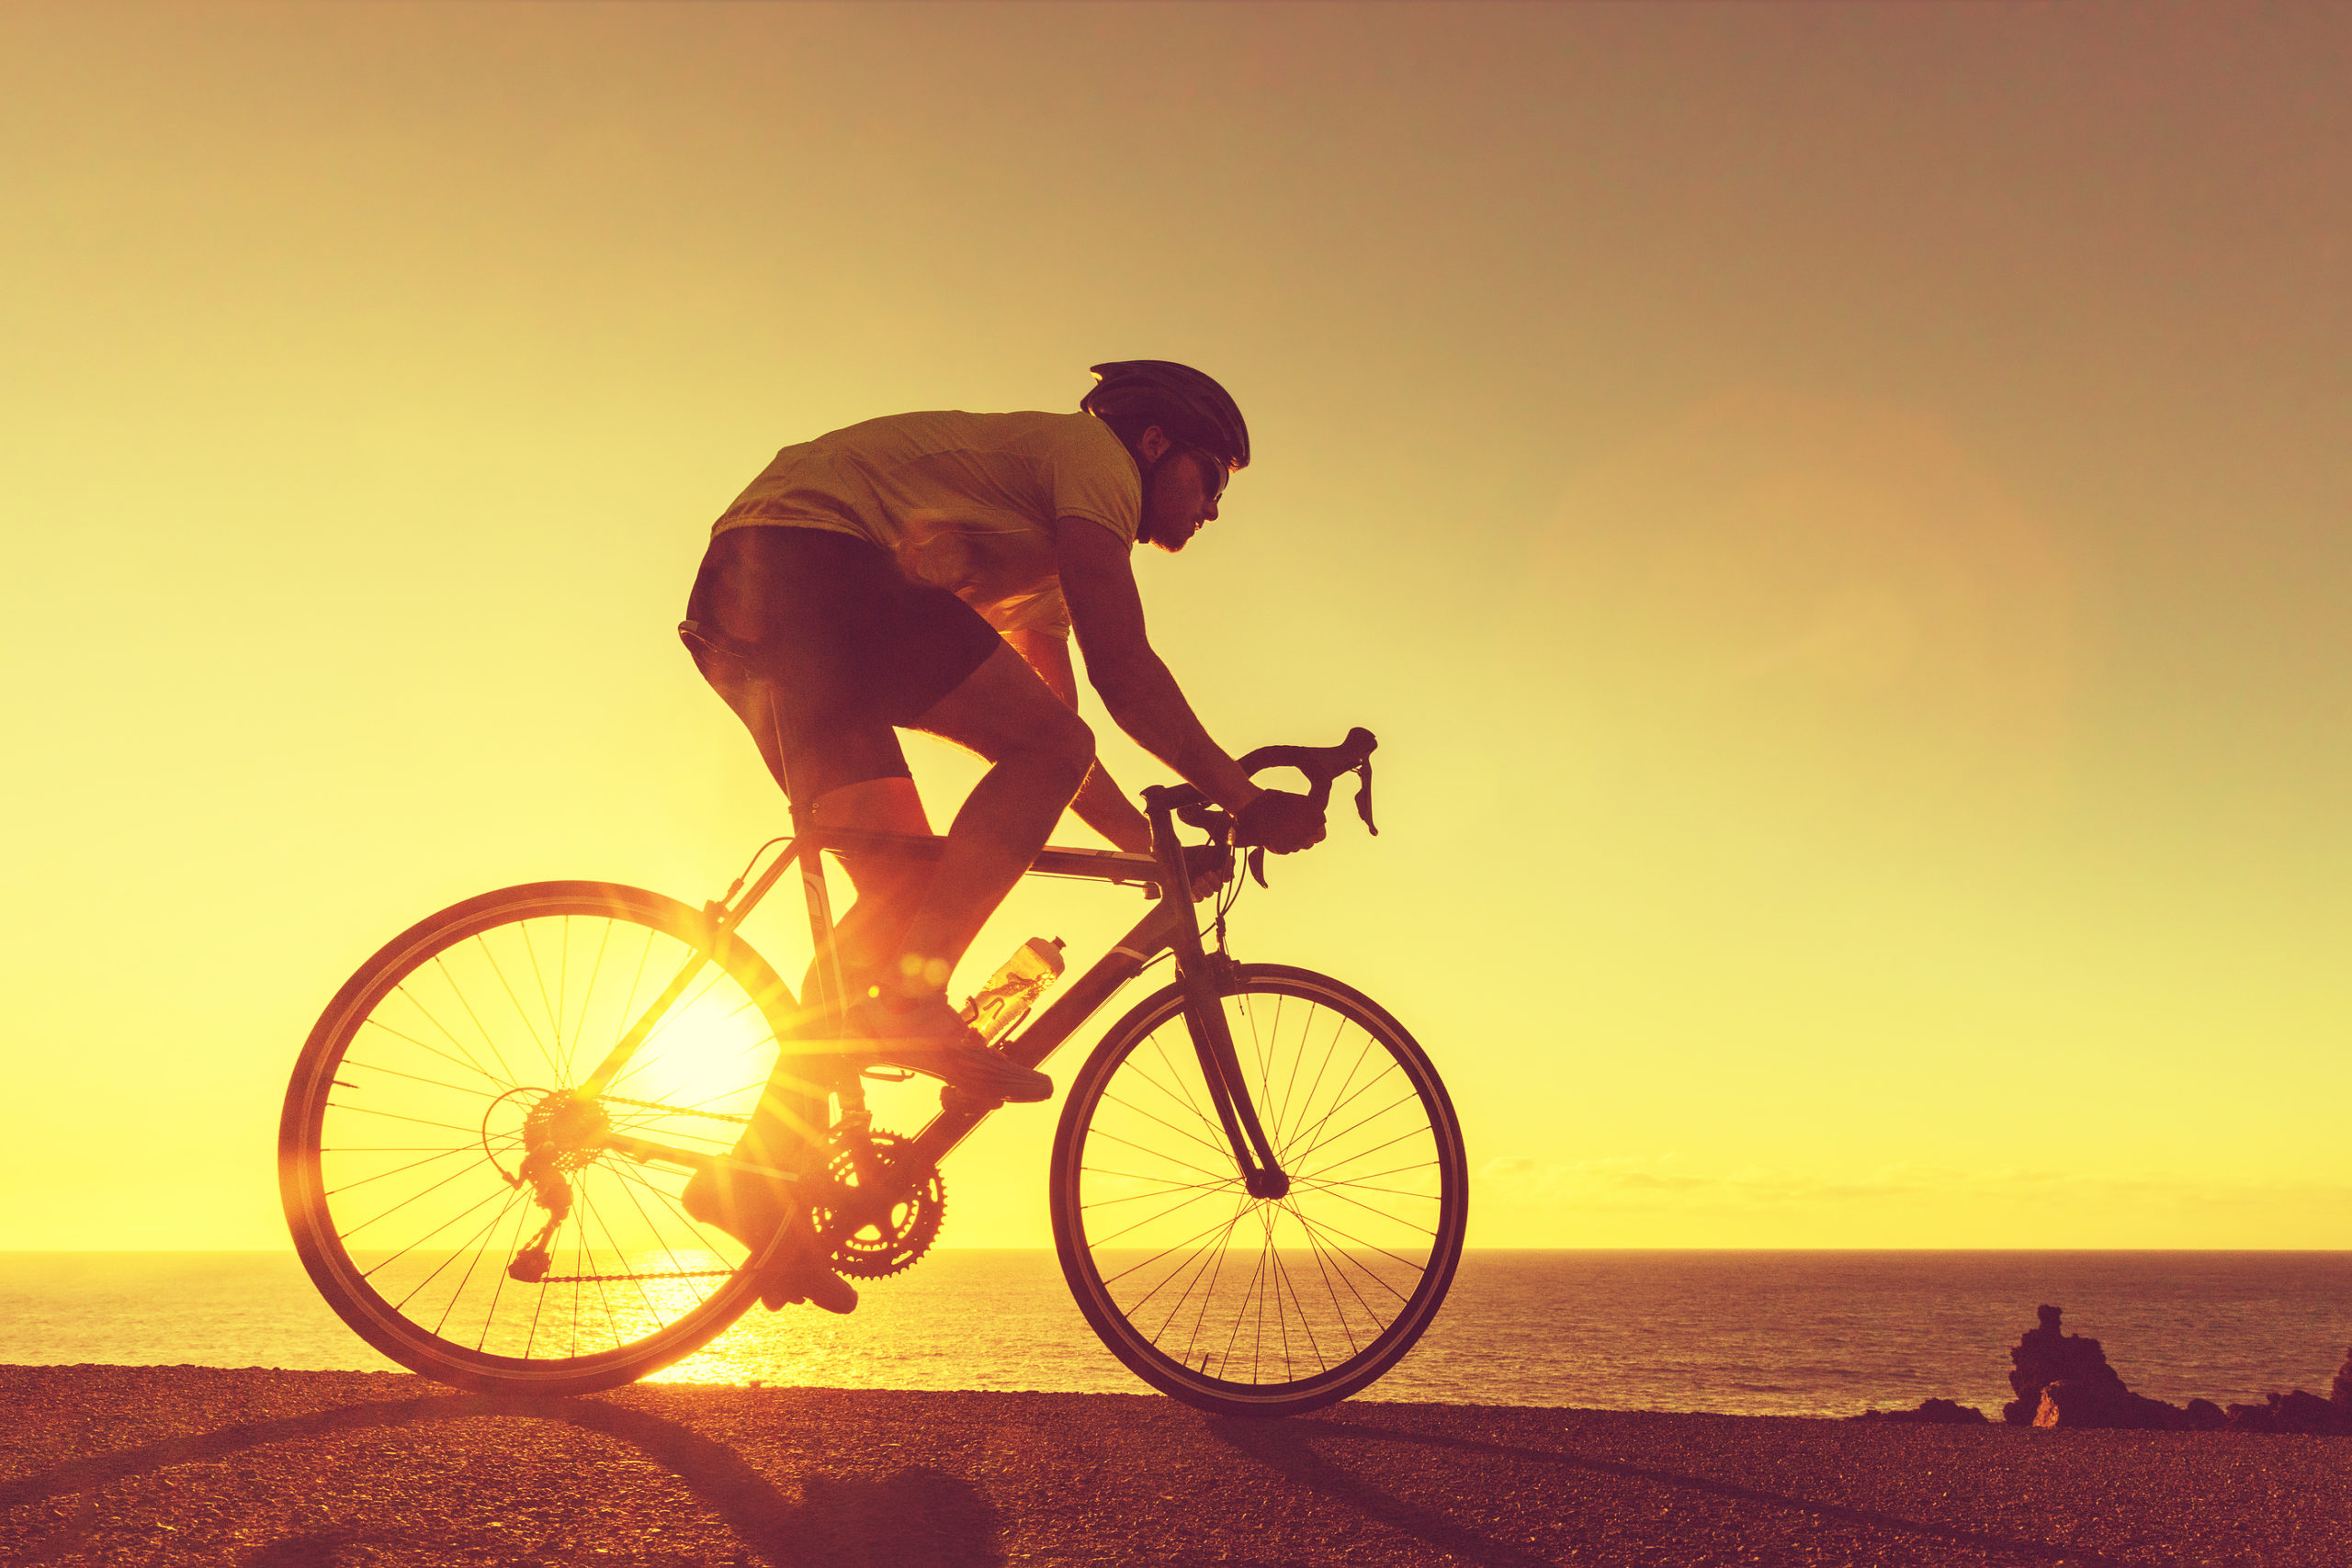 Cyclist-Riding-Bike-on-Open-Road-to-the-Sunset-Sun-Flare